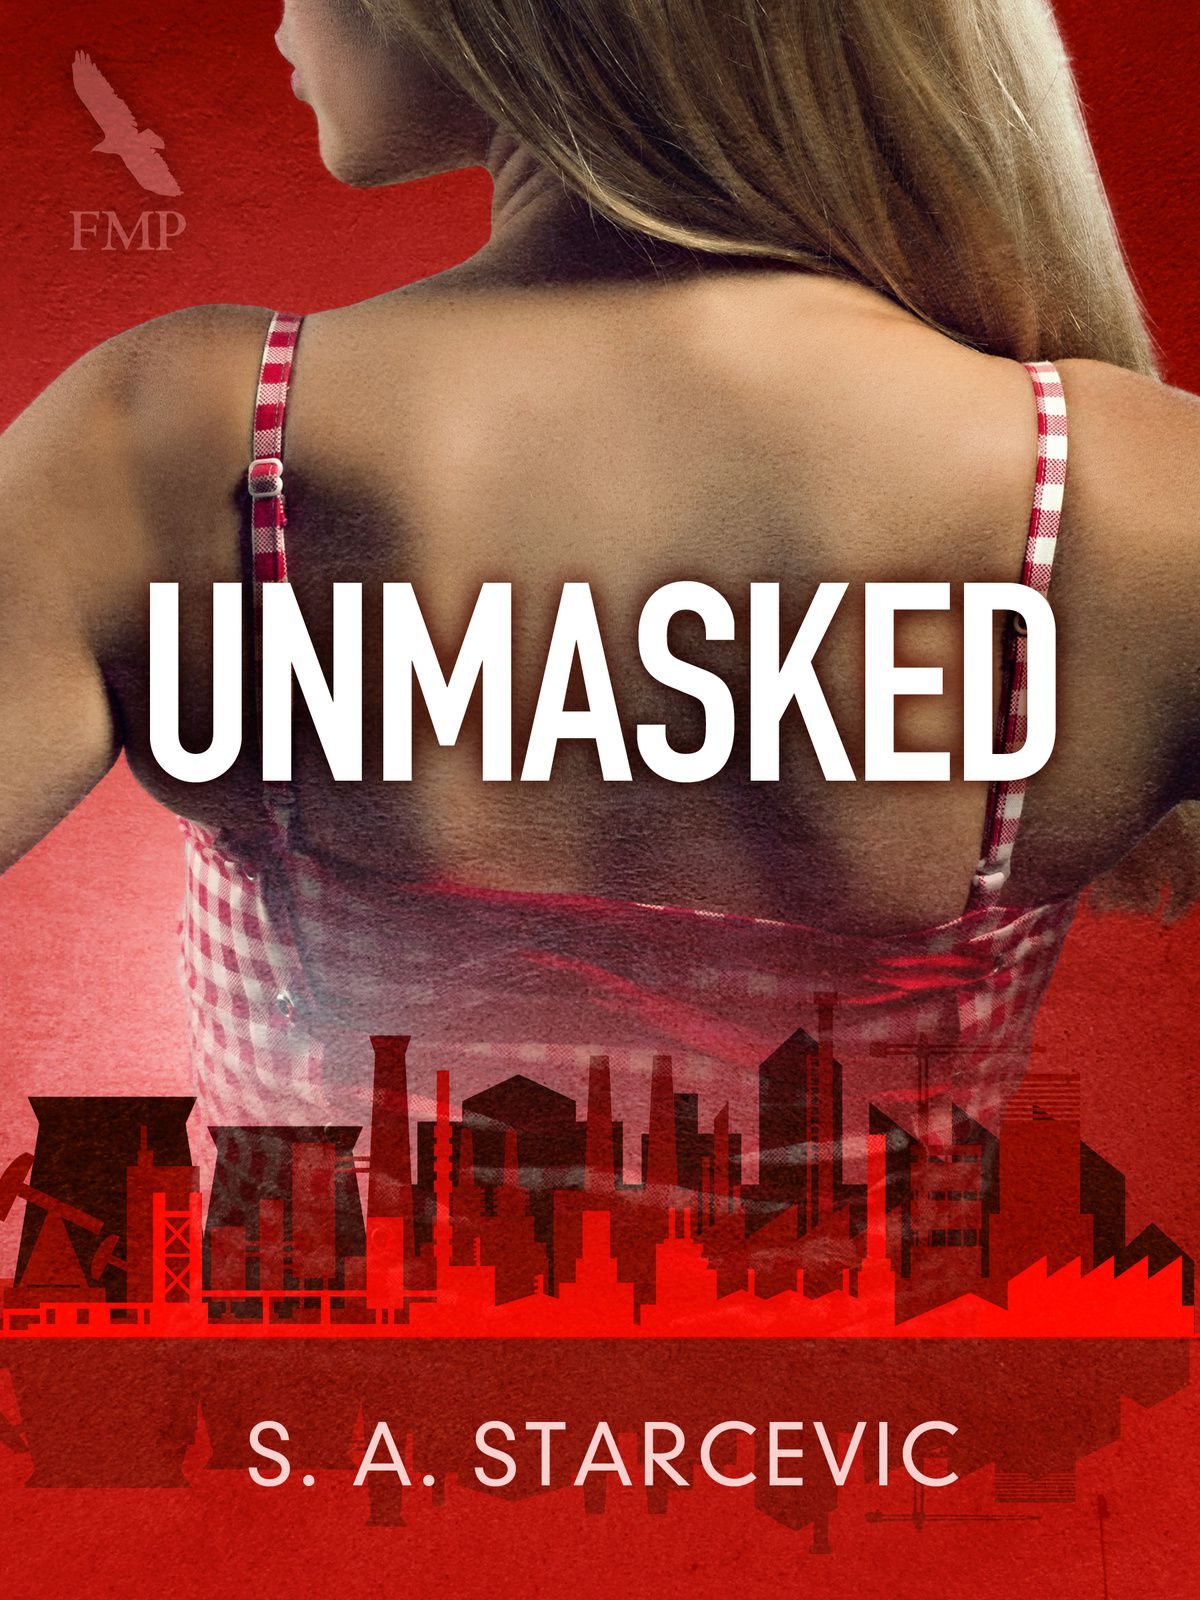 Unmasked by S.A Starcevic